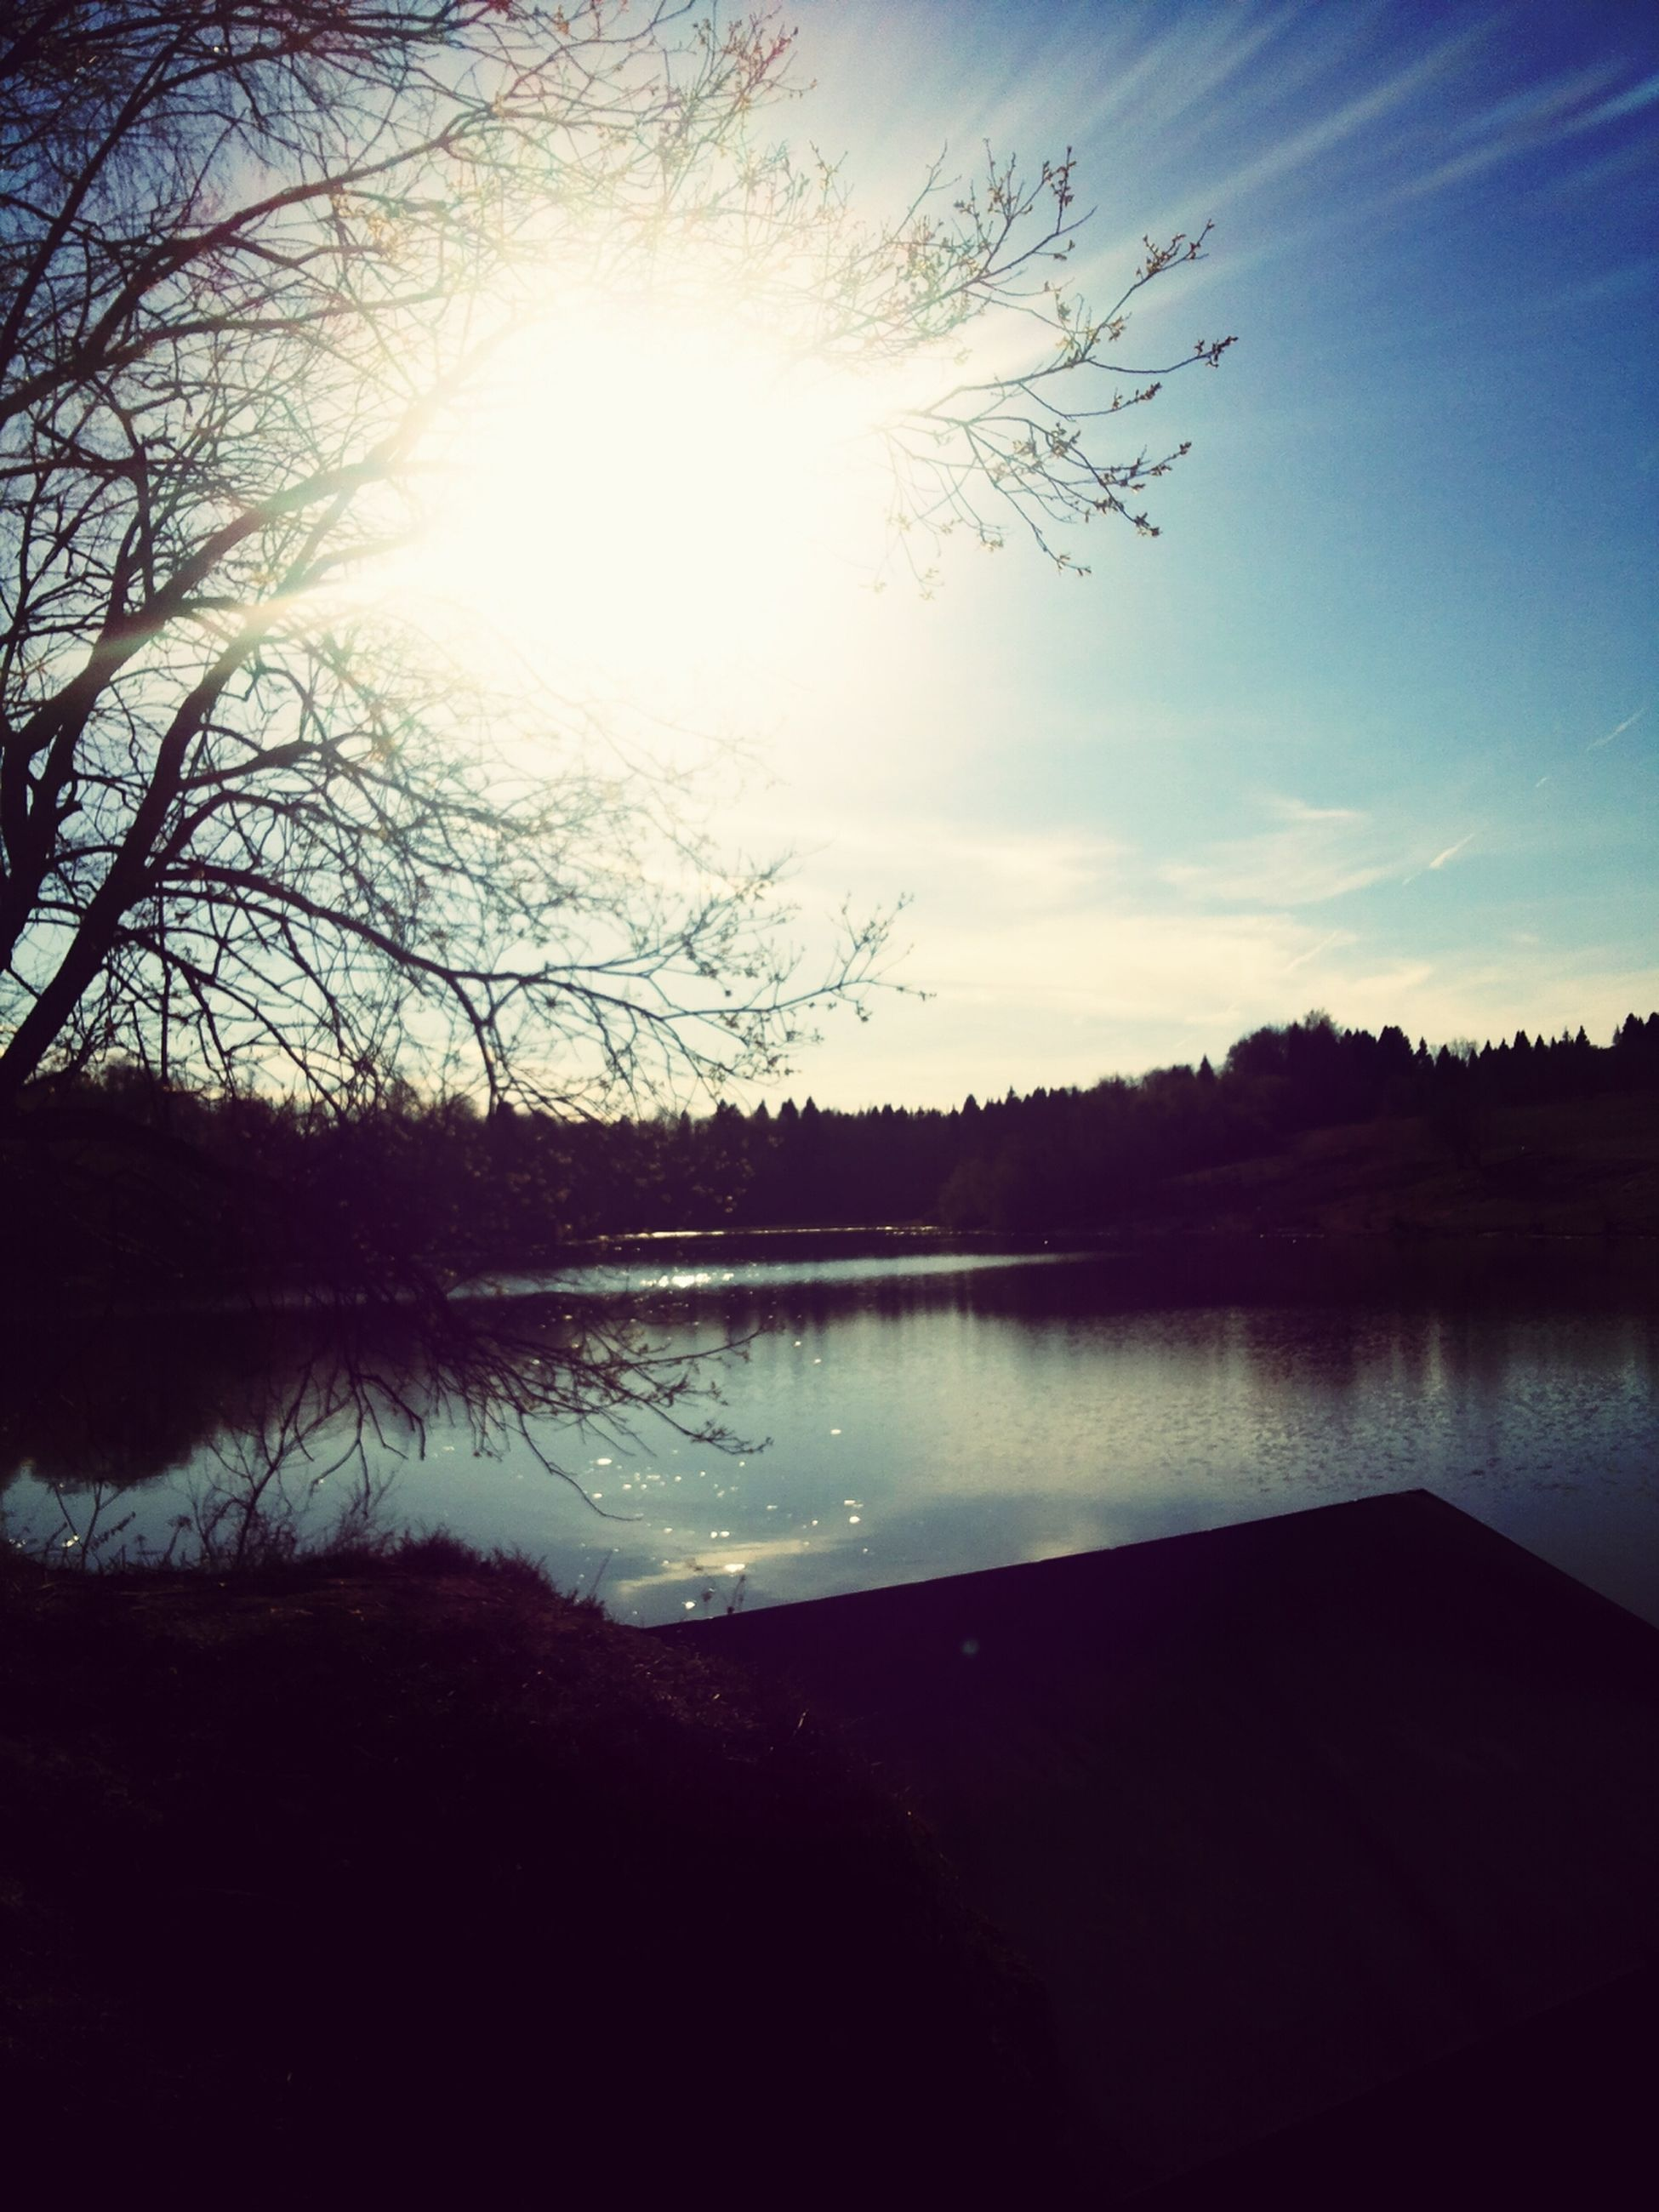 sun, water, reflection, sunlight, sky, tree, sunbeam, lake, silhouette, tranquil scene, tranquility, beauty in nature, scenics, lens flare, nature, river, sunny, outdoors, cloud - sky, sunset